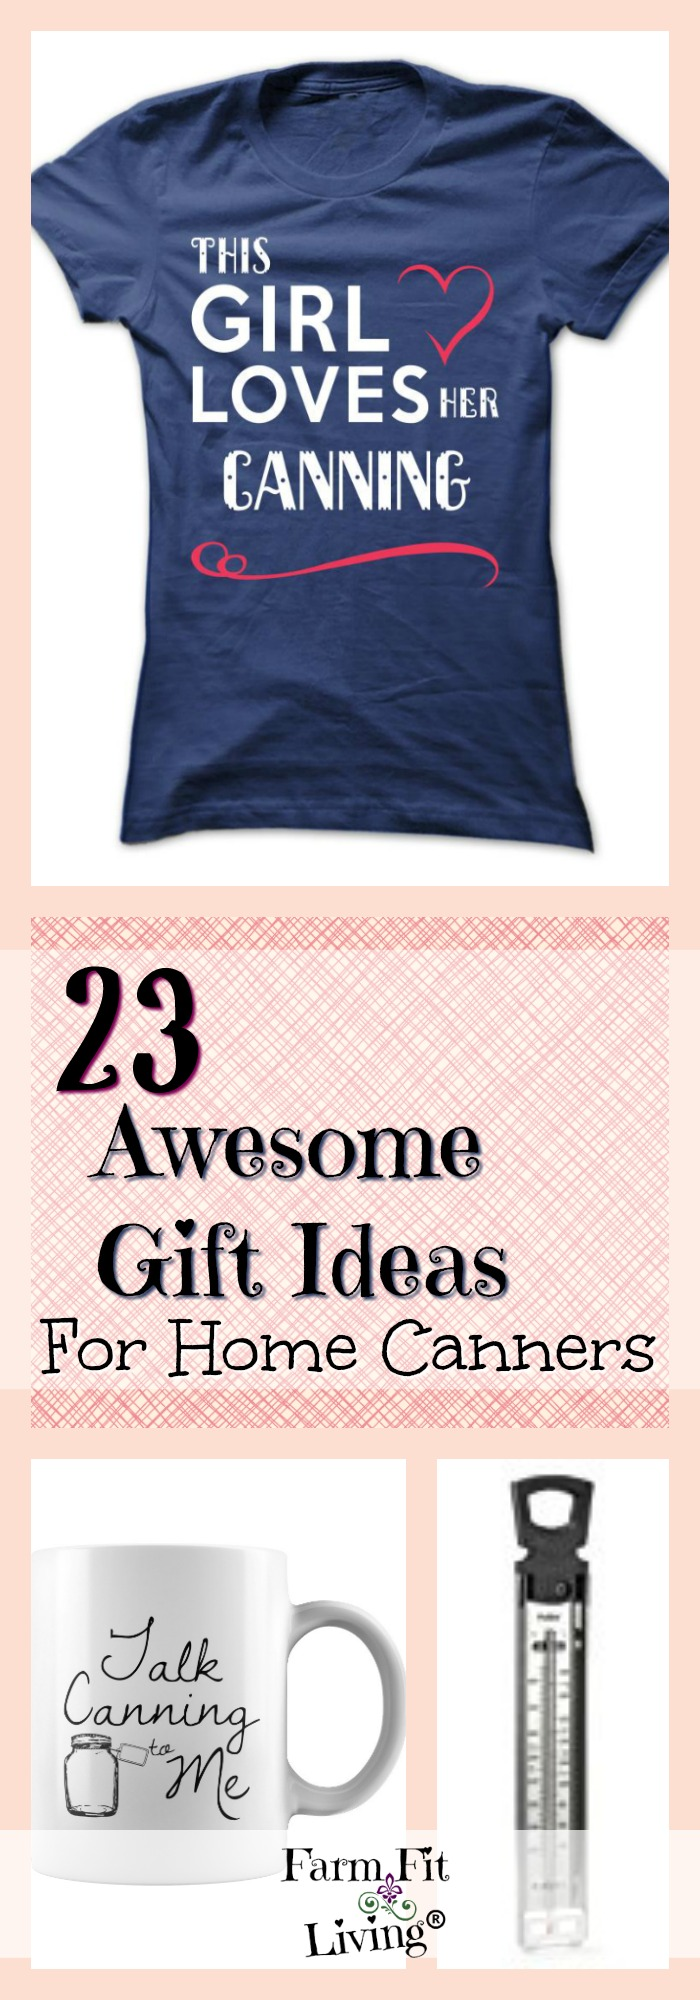 Are you in need of gift ideas for home canners? Whether it be Christmas, Birthday, or just because, here's 23 gift ideas any home canner is sure to love.